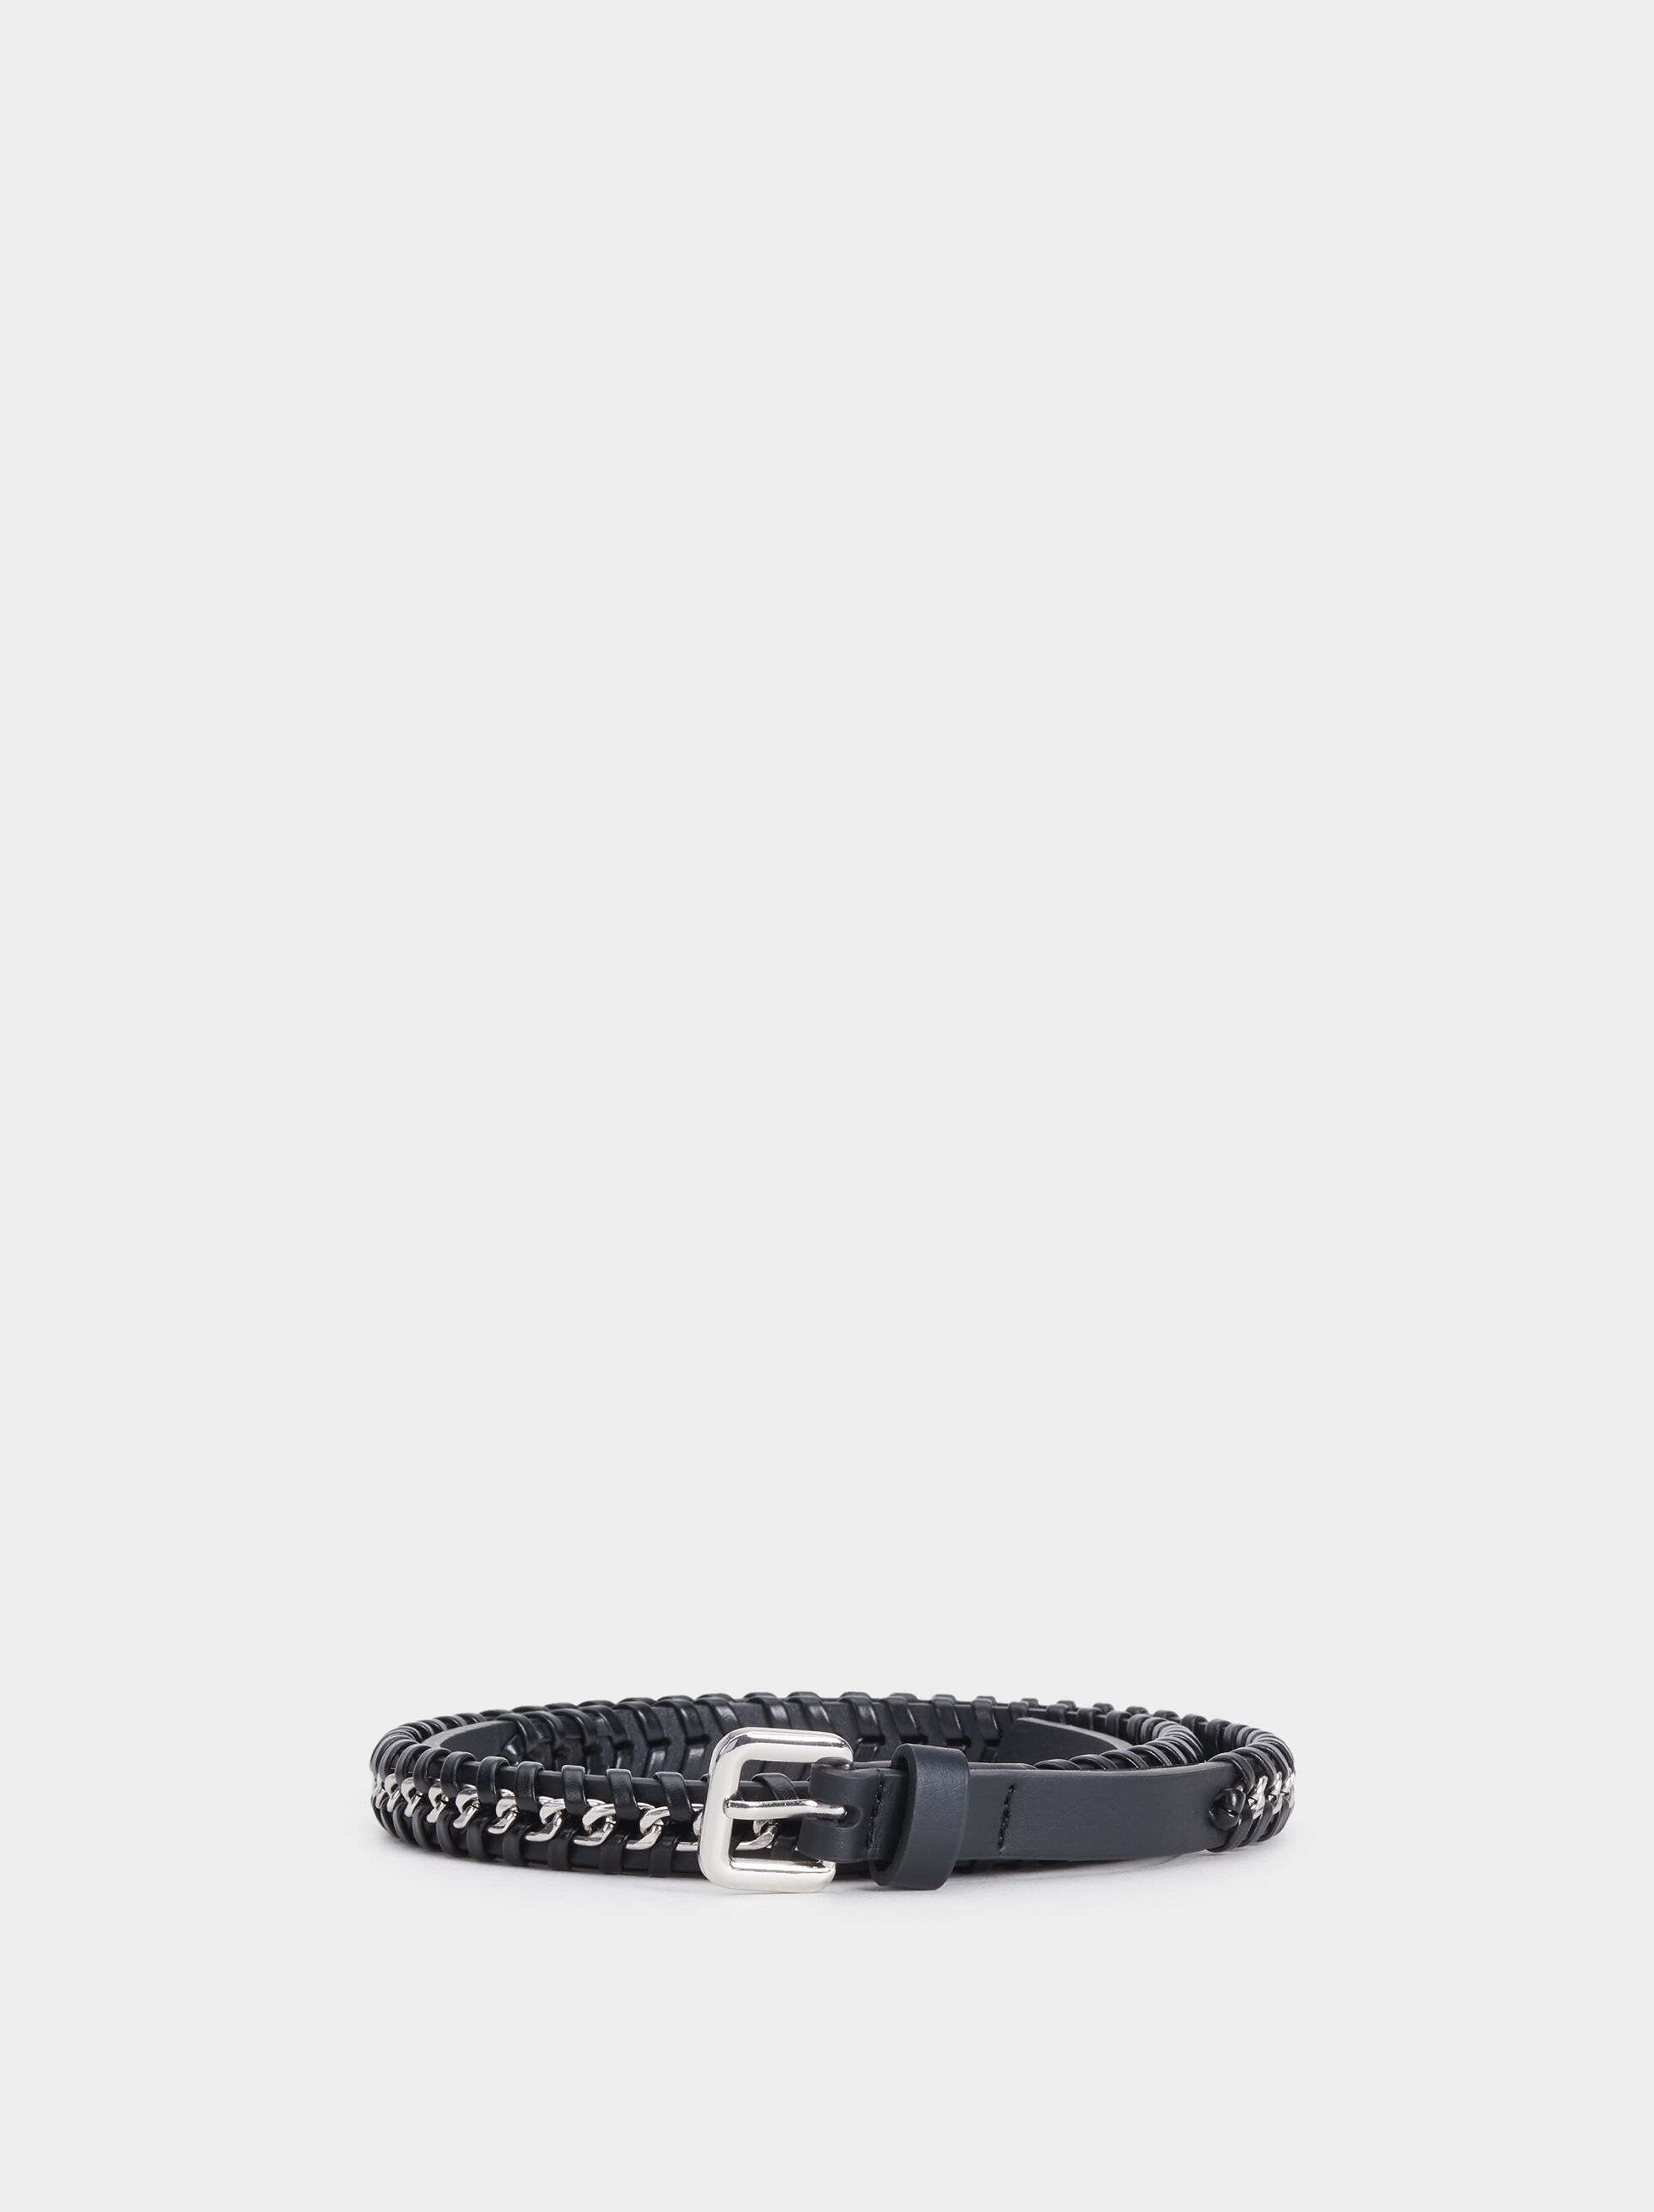 Braided Belt, Black, hi-res